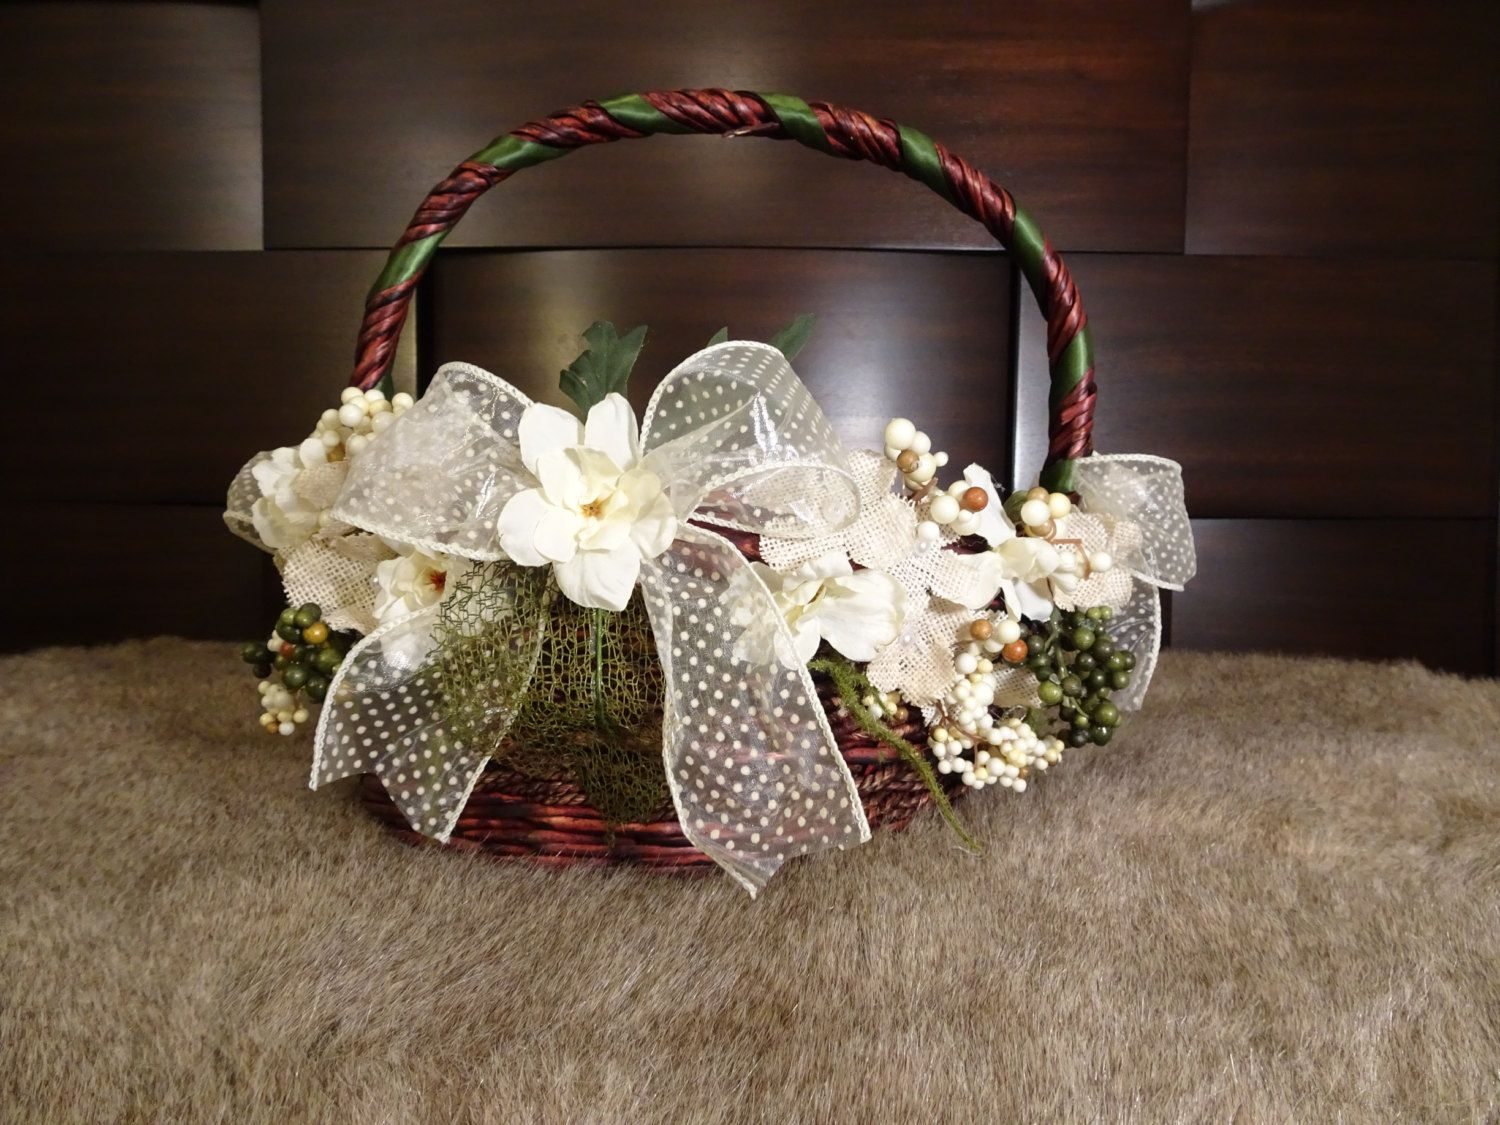 Rustic and White Wedding Favors Basket   Rustic Wedding, Favors Basket, White Basket, Wedding Basket, Floral Basket, Rustic Basket, Organza by TheGiftBasketry on Etsy